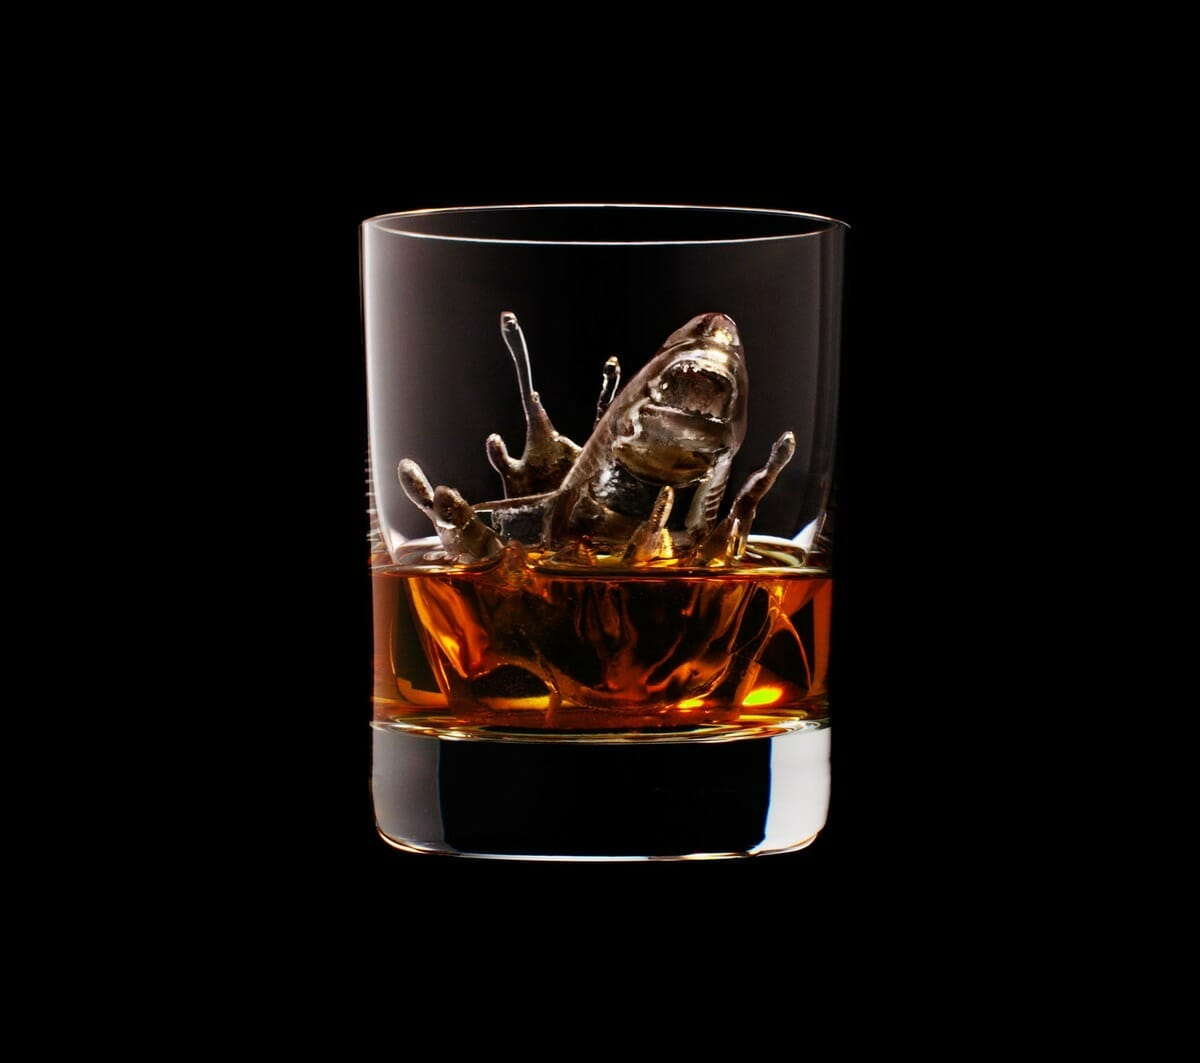 3D Printed Whiskey Ice Cubes?